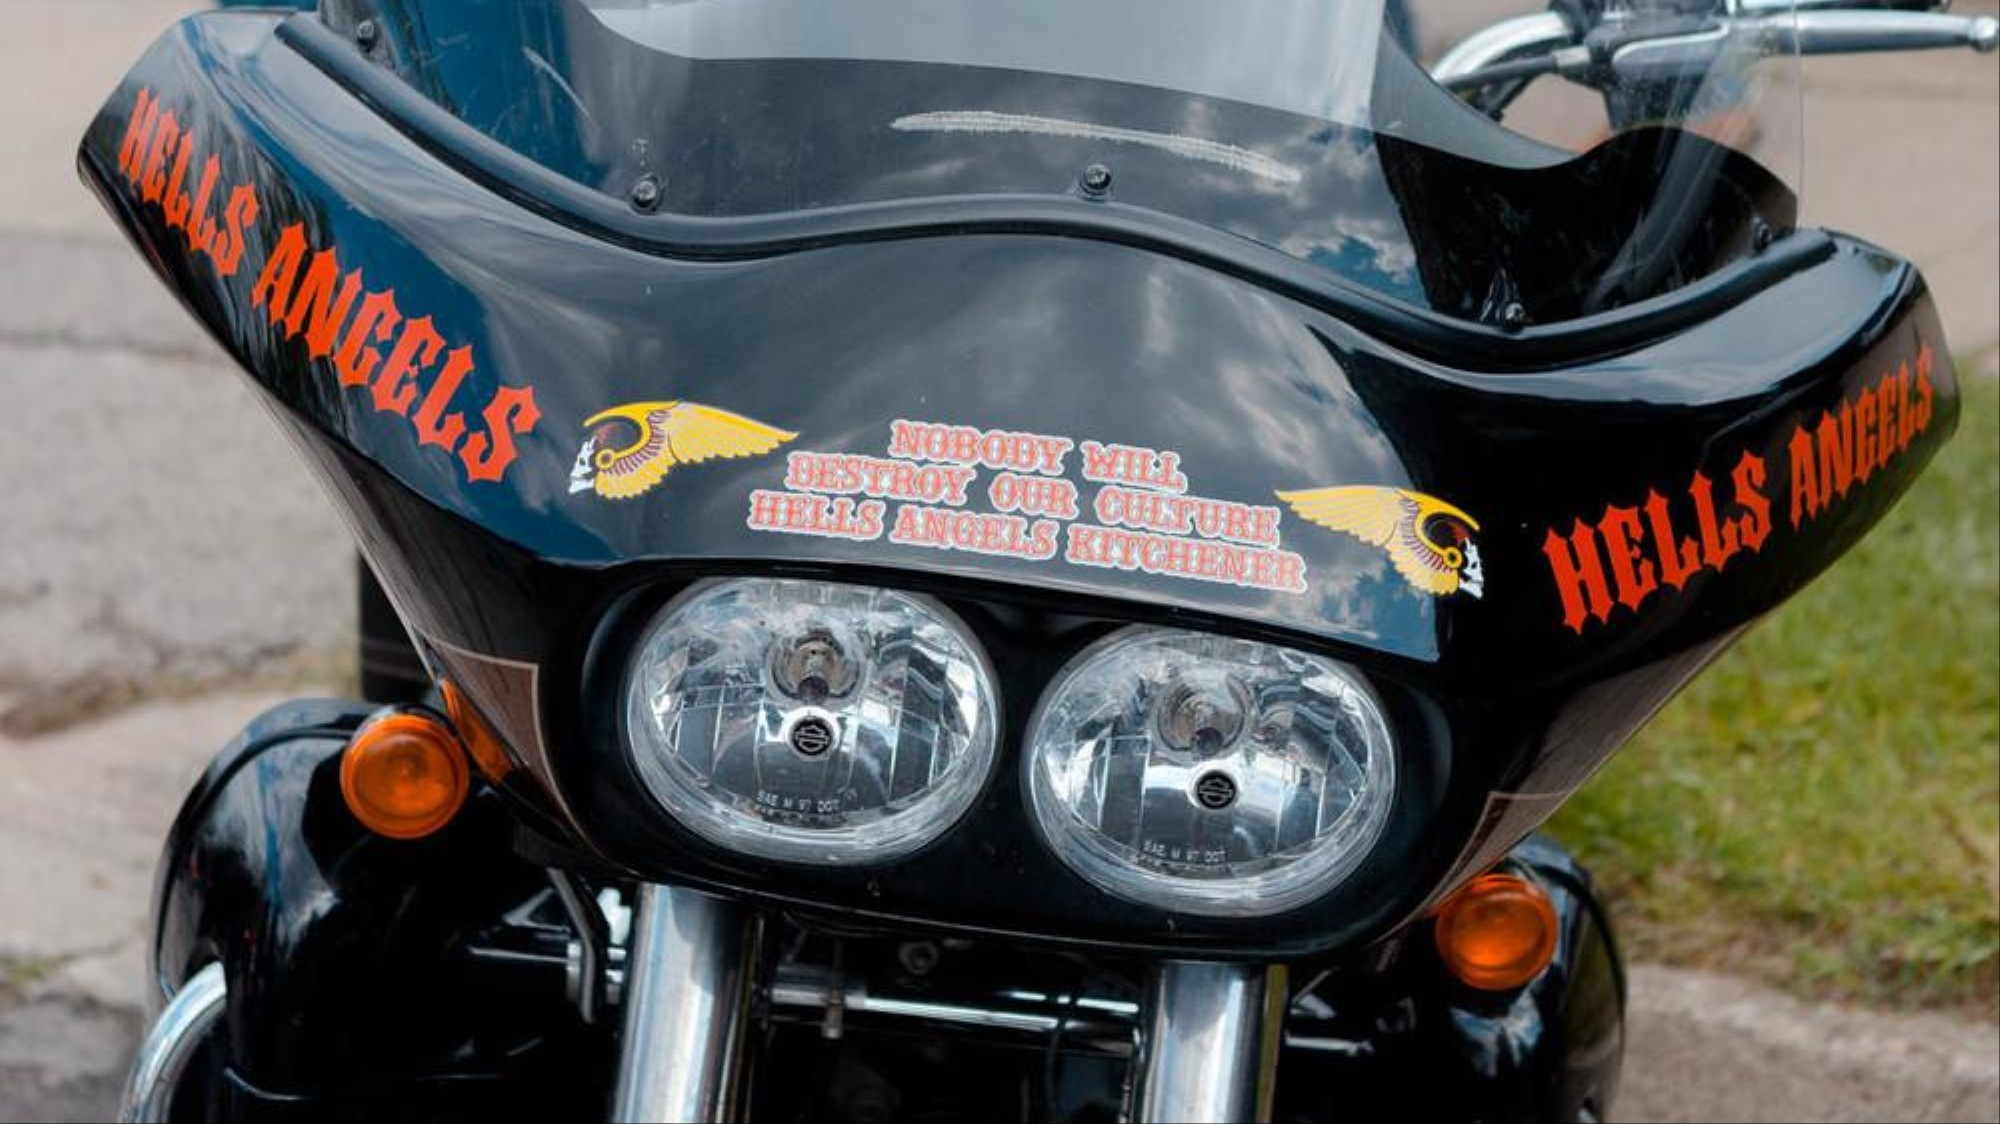 RCMP Arrest 'Entire' PEI Hells Angels Club - VICE